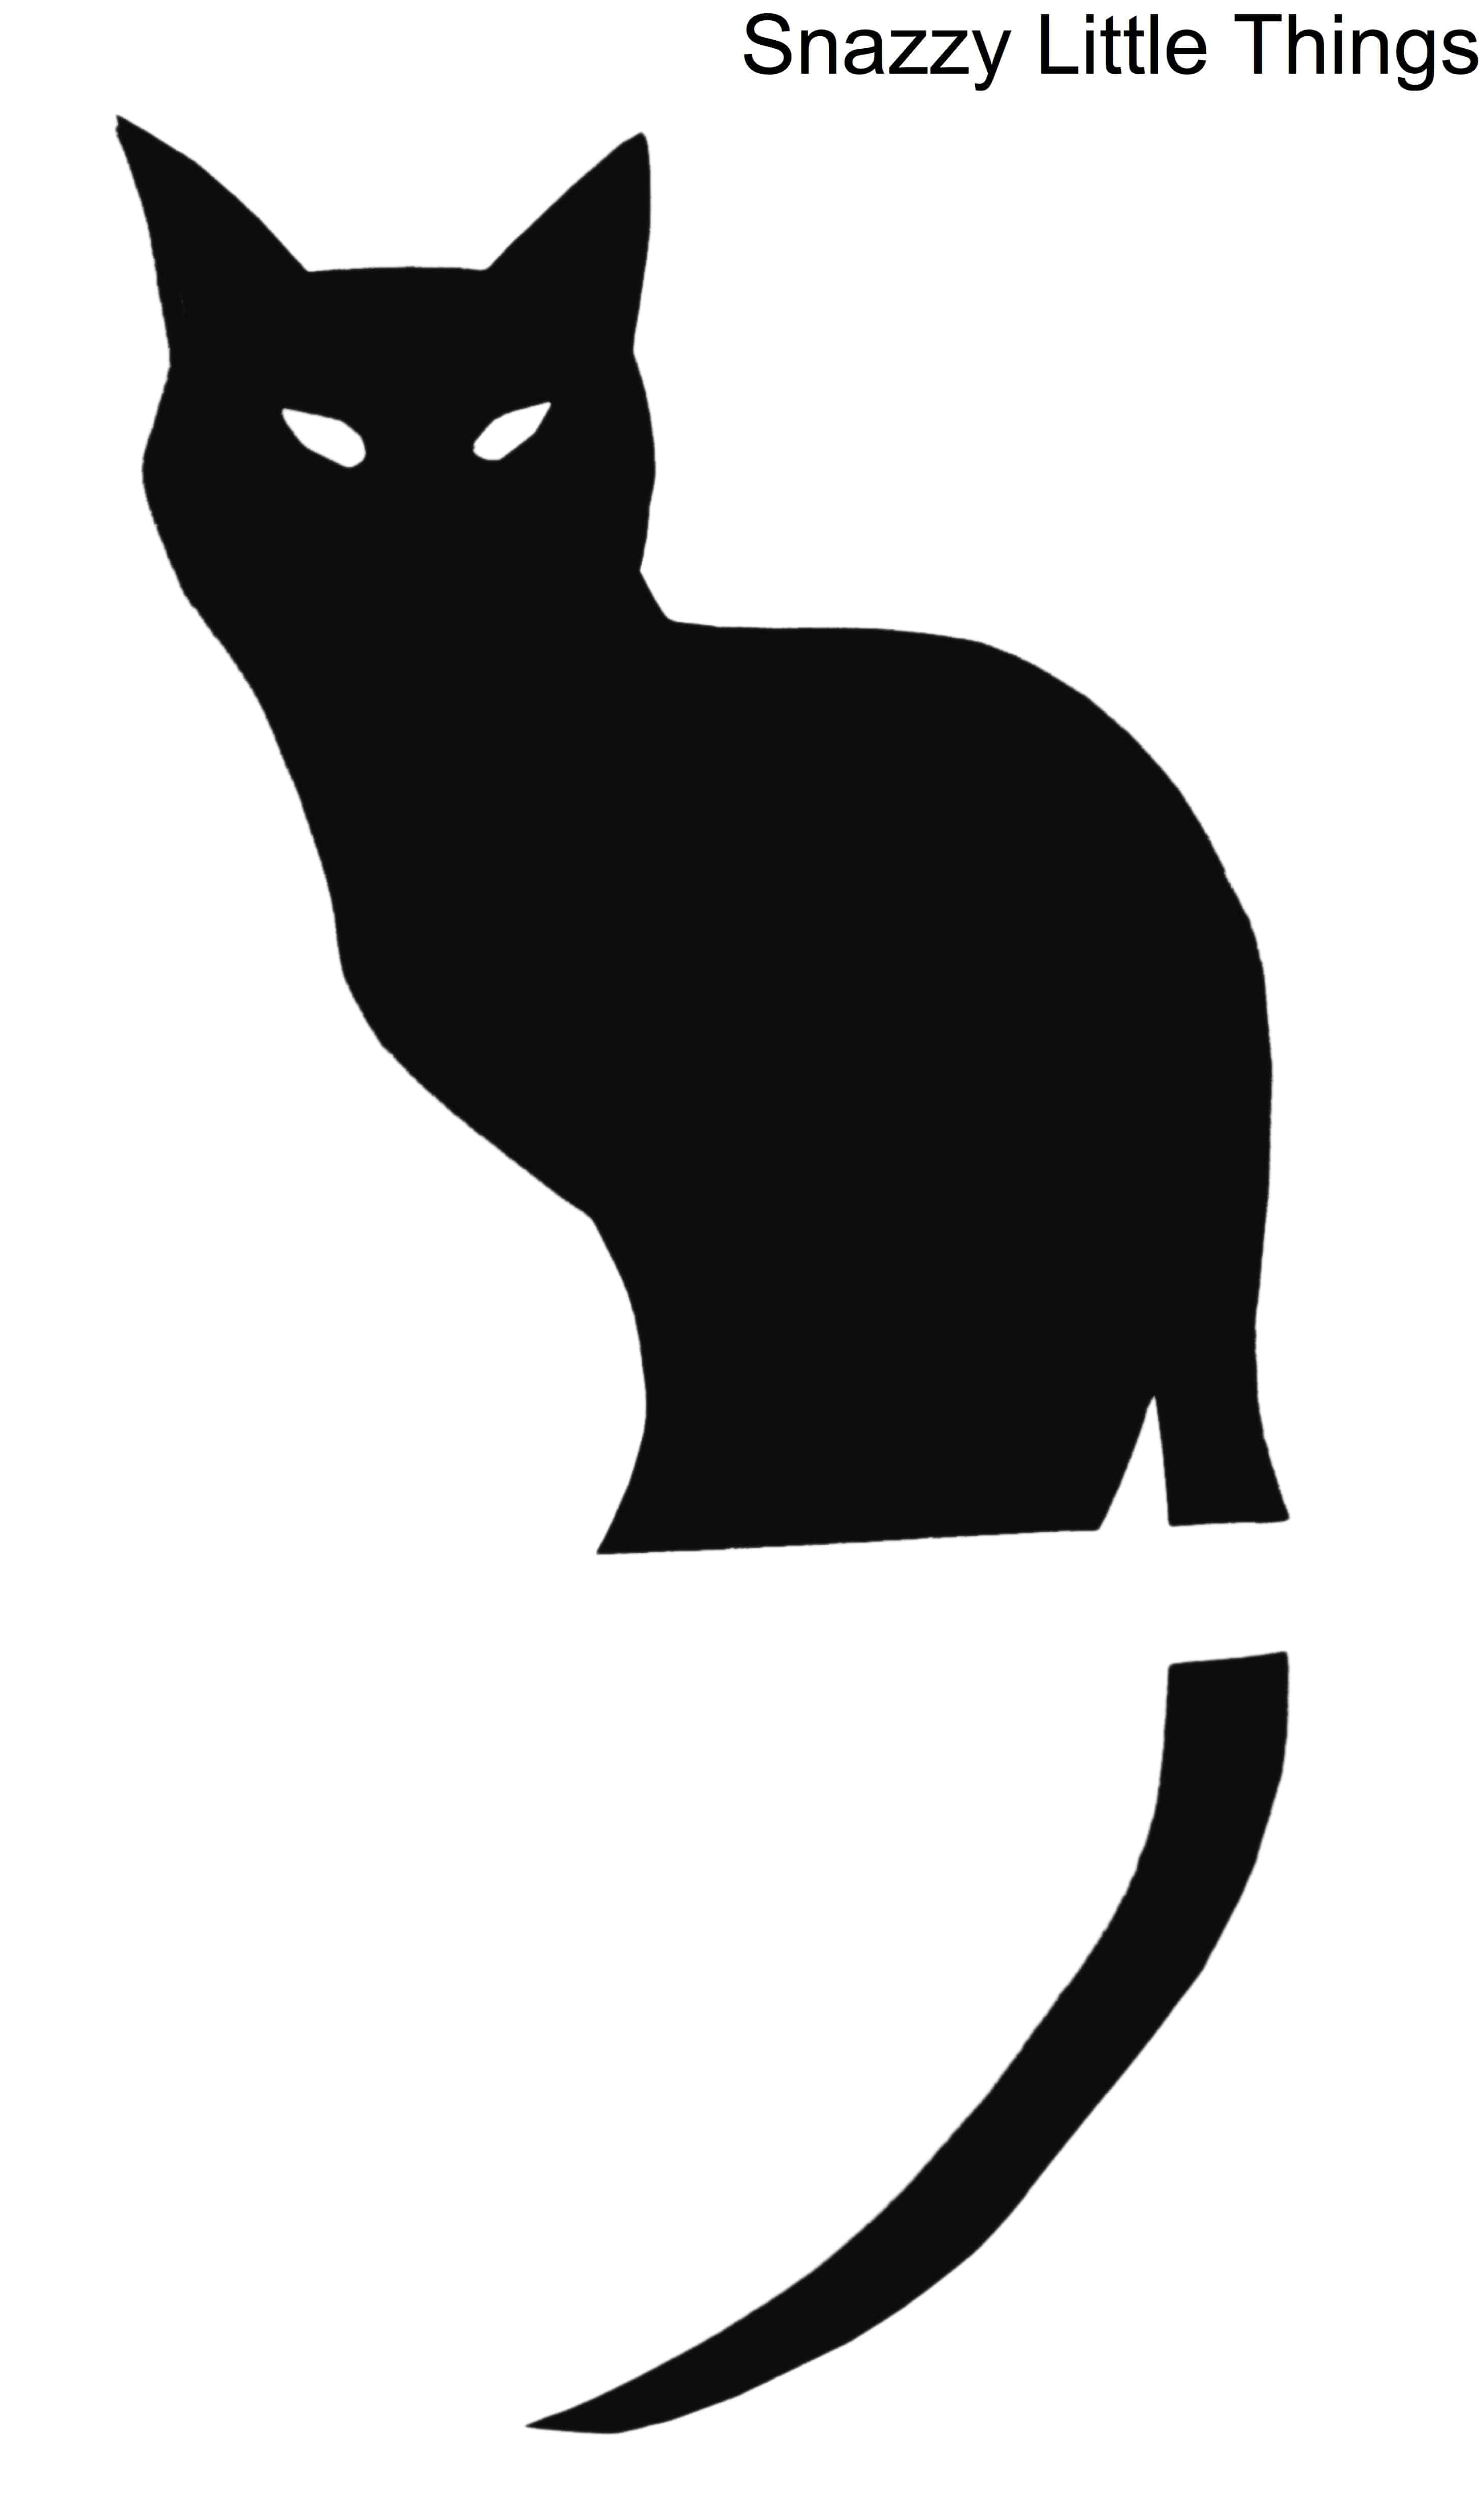 black cat templates for halloween - free downloads halloween window silhouettes snazzy